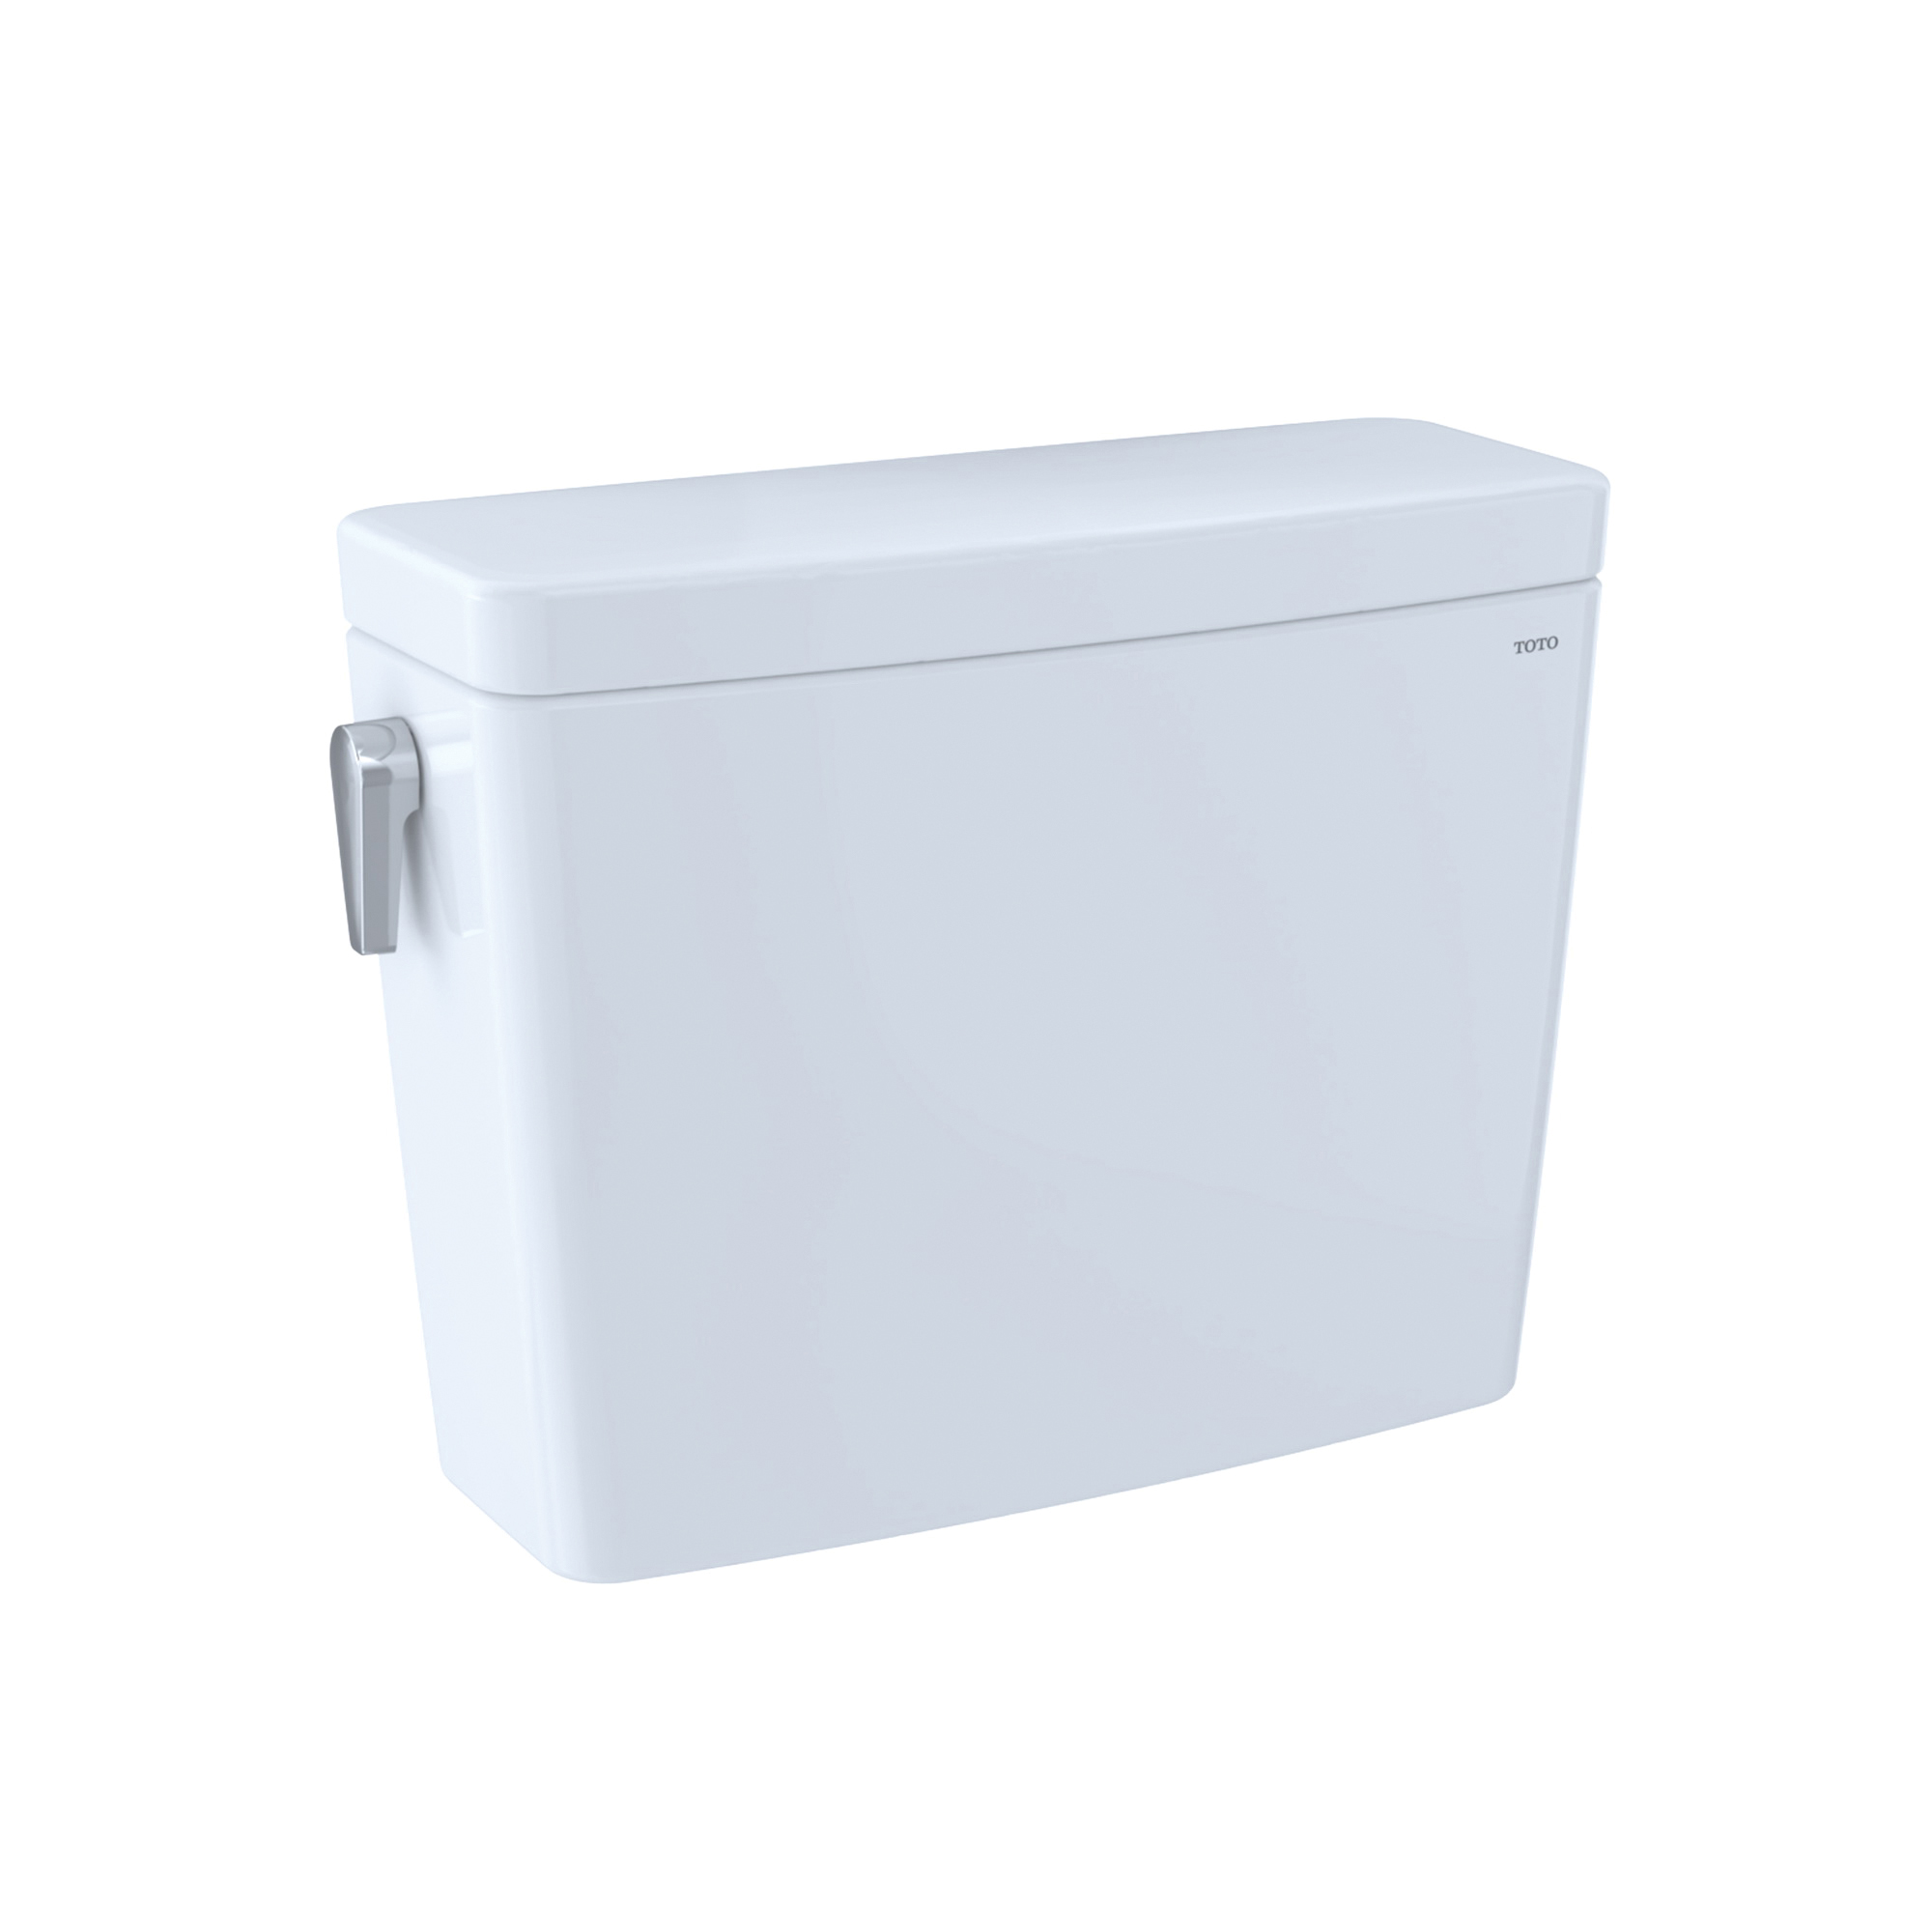 Toto® ST746EMA#01 Dual Flush Tank and Cover Only With T40 WASHLET®+ Auto Flush, Drake®, 0.8/1.28 gpf, 2-1/2 in Left-Hand Trip Lever Flush, Cotton White, Import